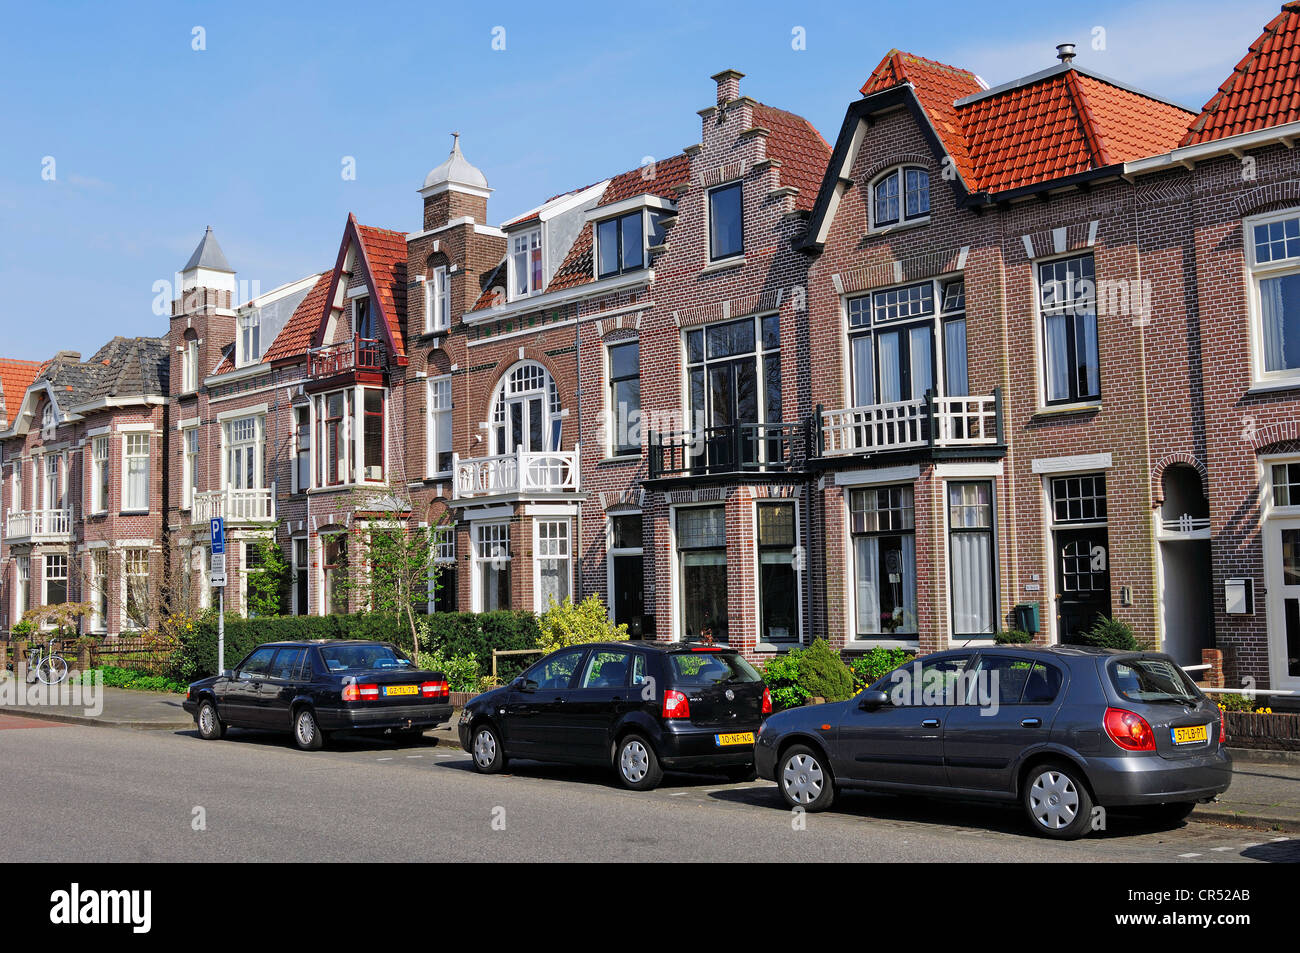 Parked cars in front of a row of houses, Alkmaar, North Holland, Holland, Netherlands, Europe - Stock Image